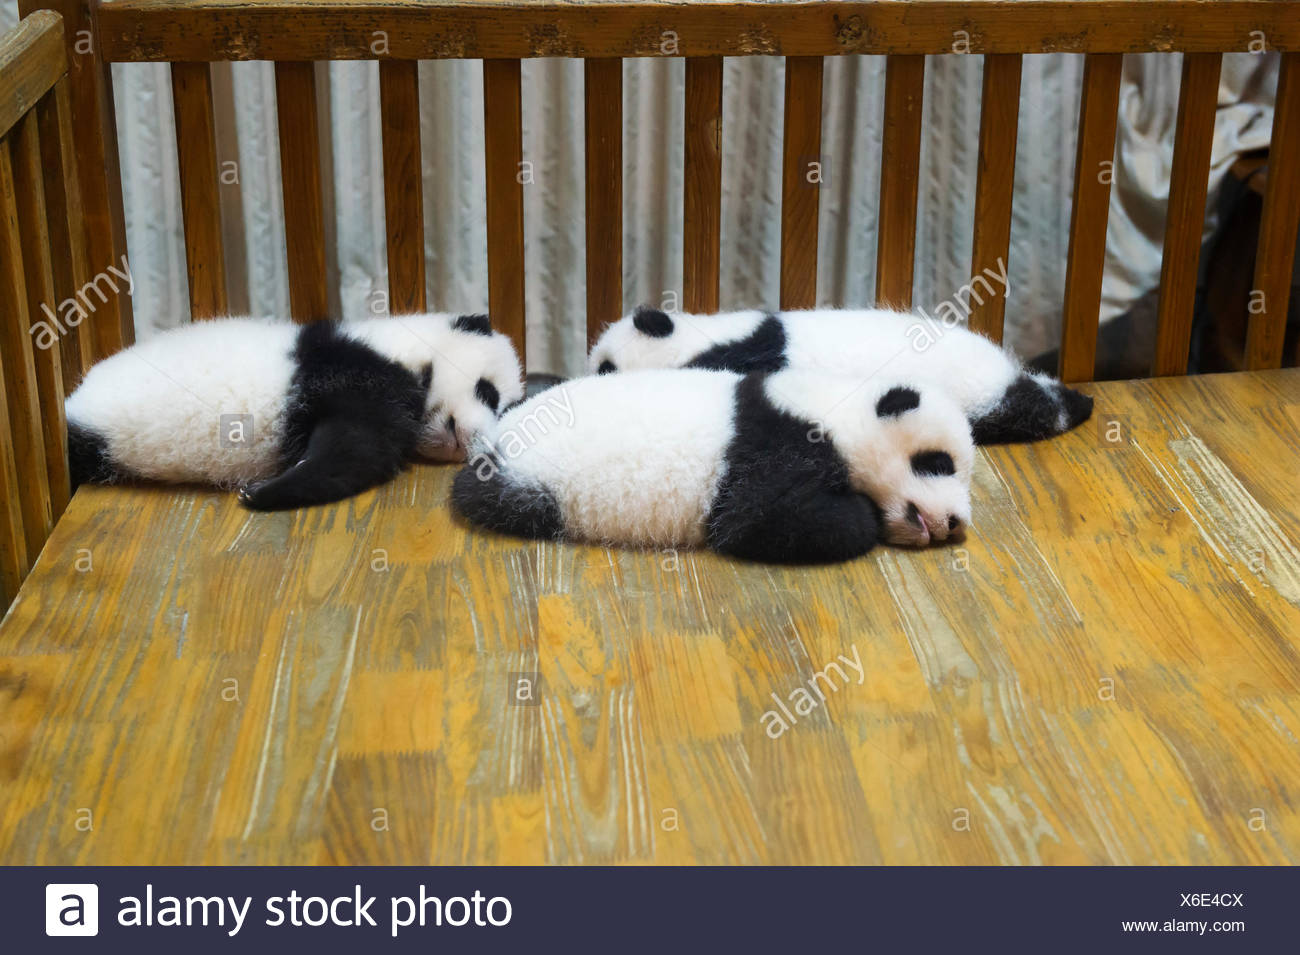 Baby Pandas (Ailuropoda melanoleuca) in the Chengdu Giant Panda Breeding Center China Conservation and Research Centre for the Giant Pandas Chengdu Sichuan China - Stock Image